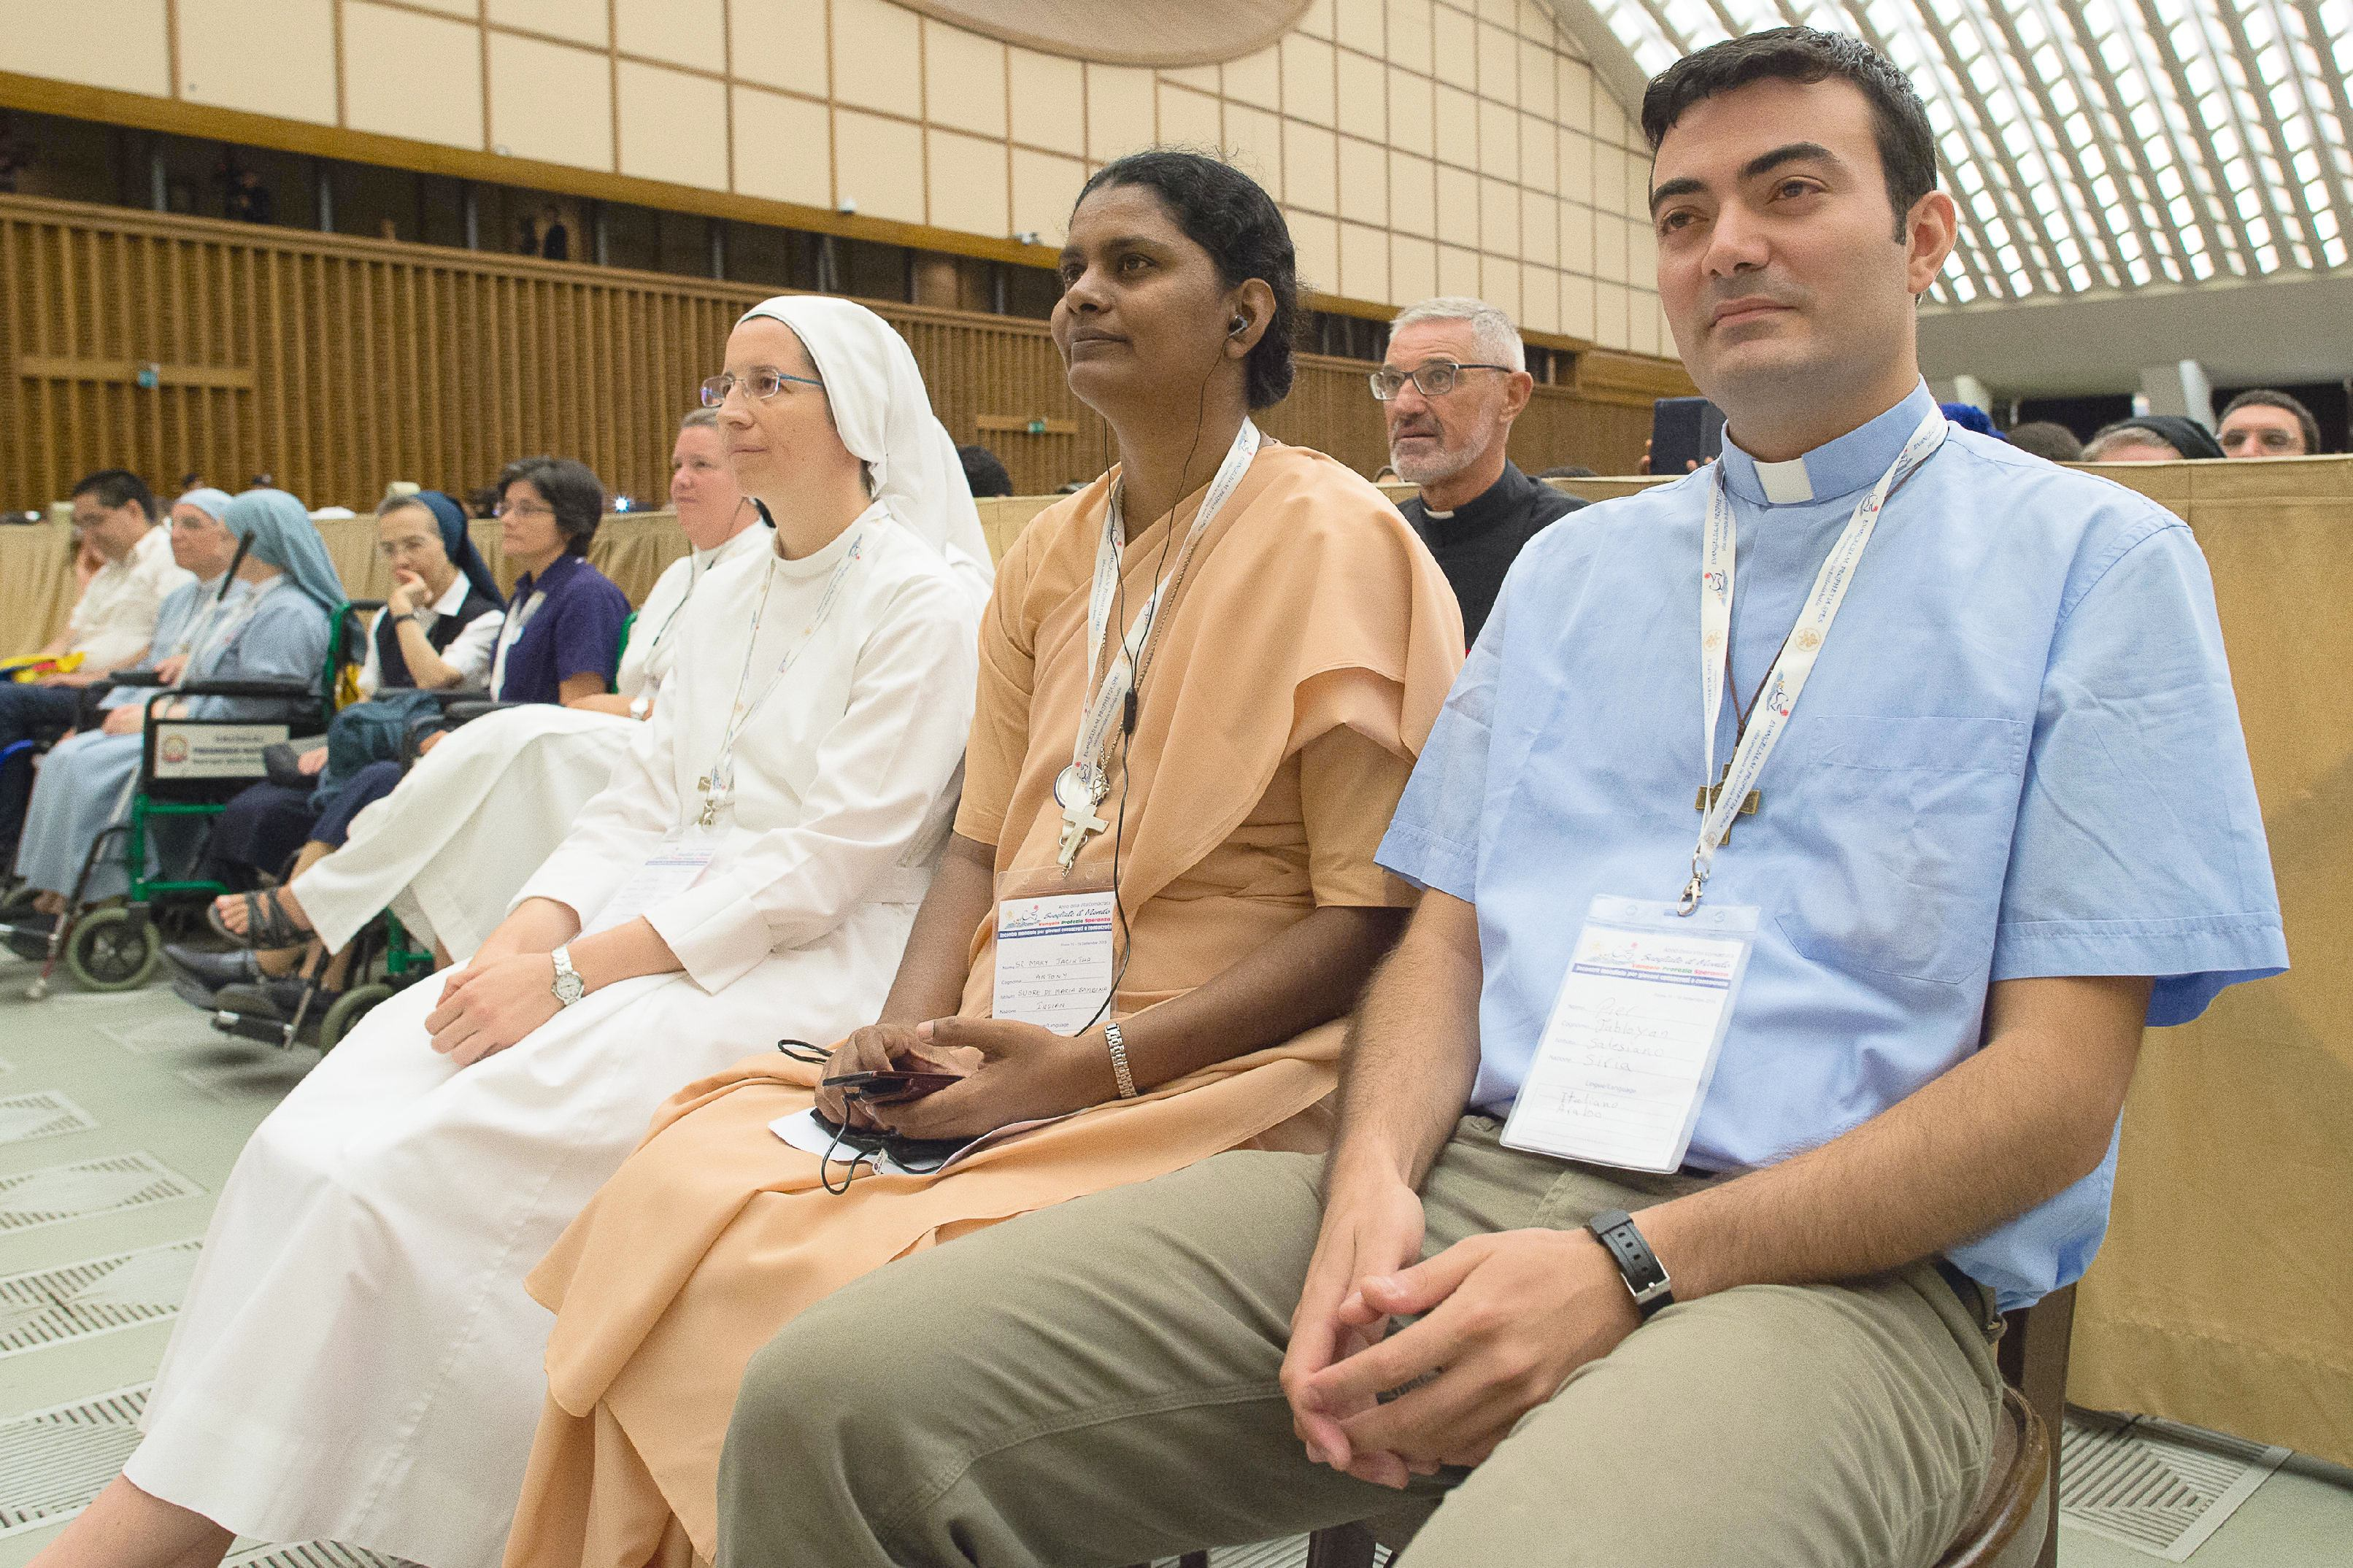 Papal audience with young consacrated men and women